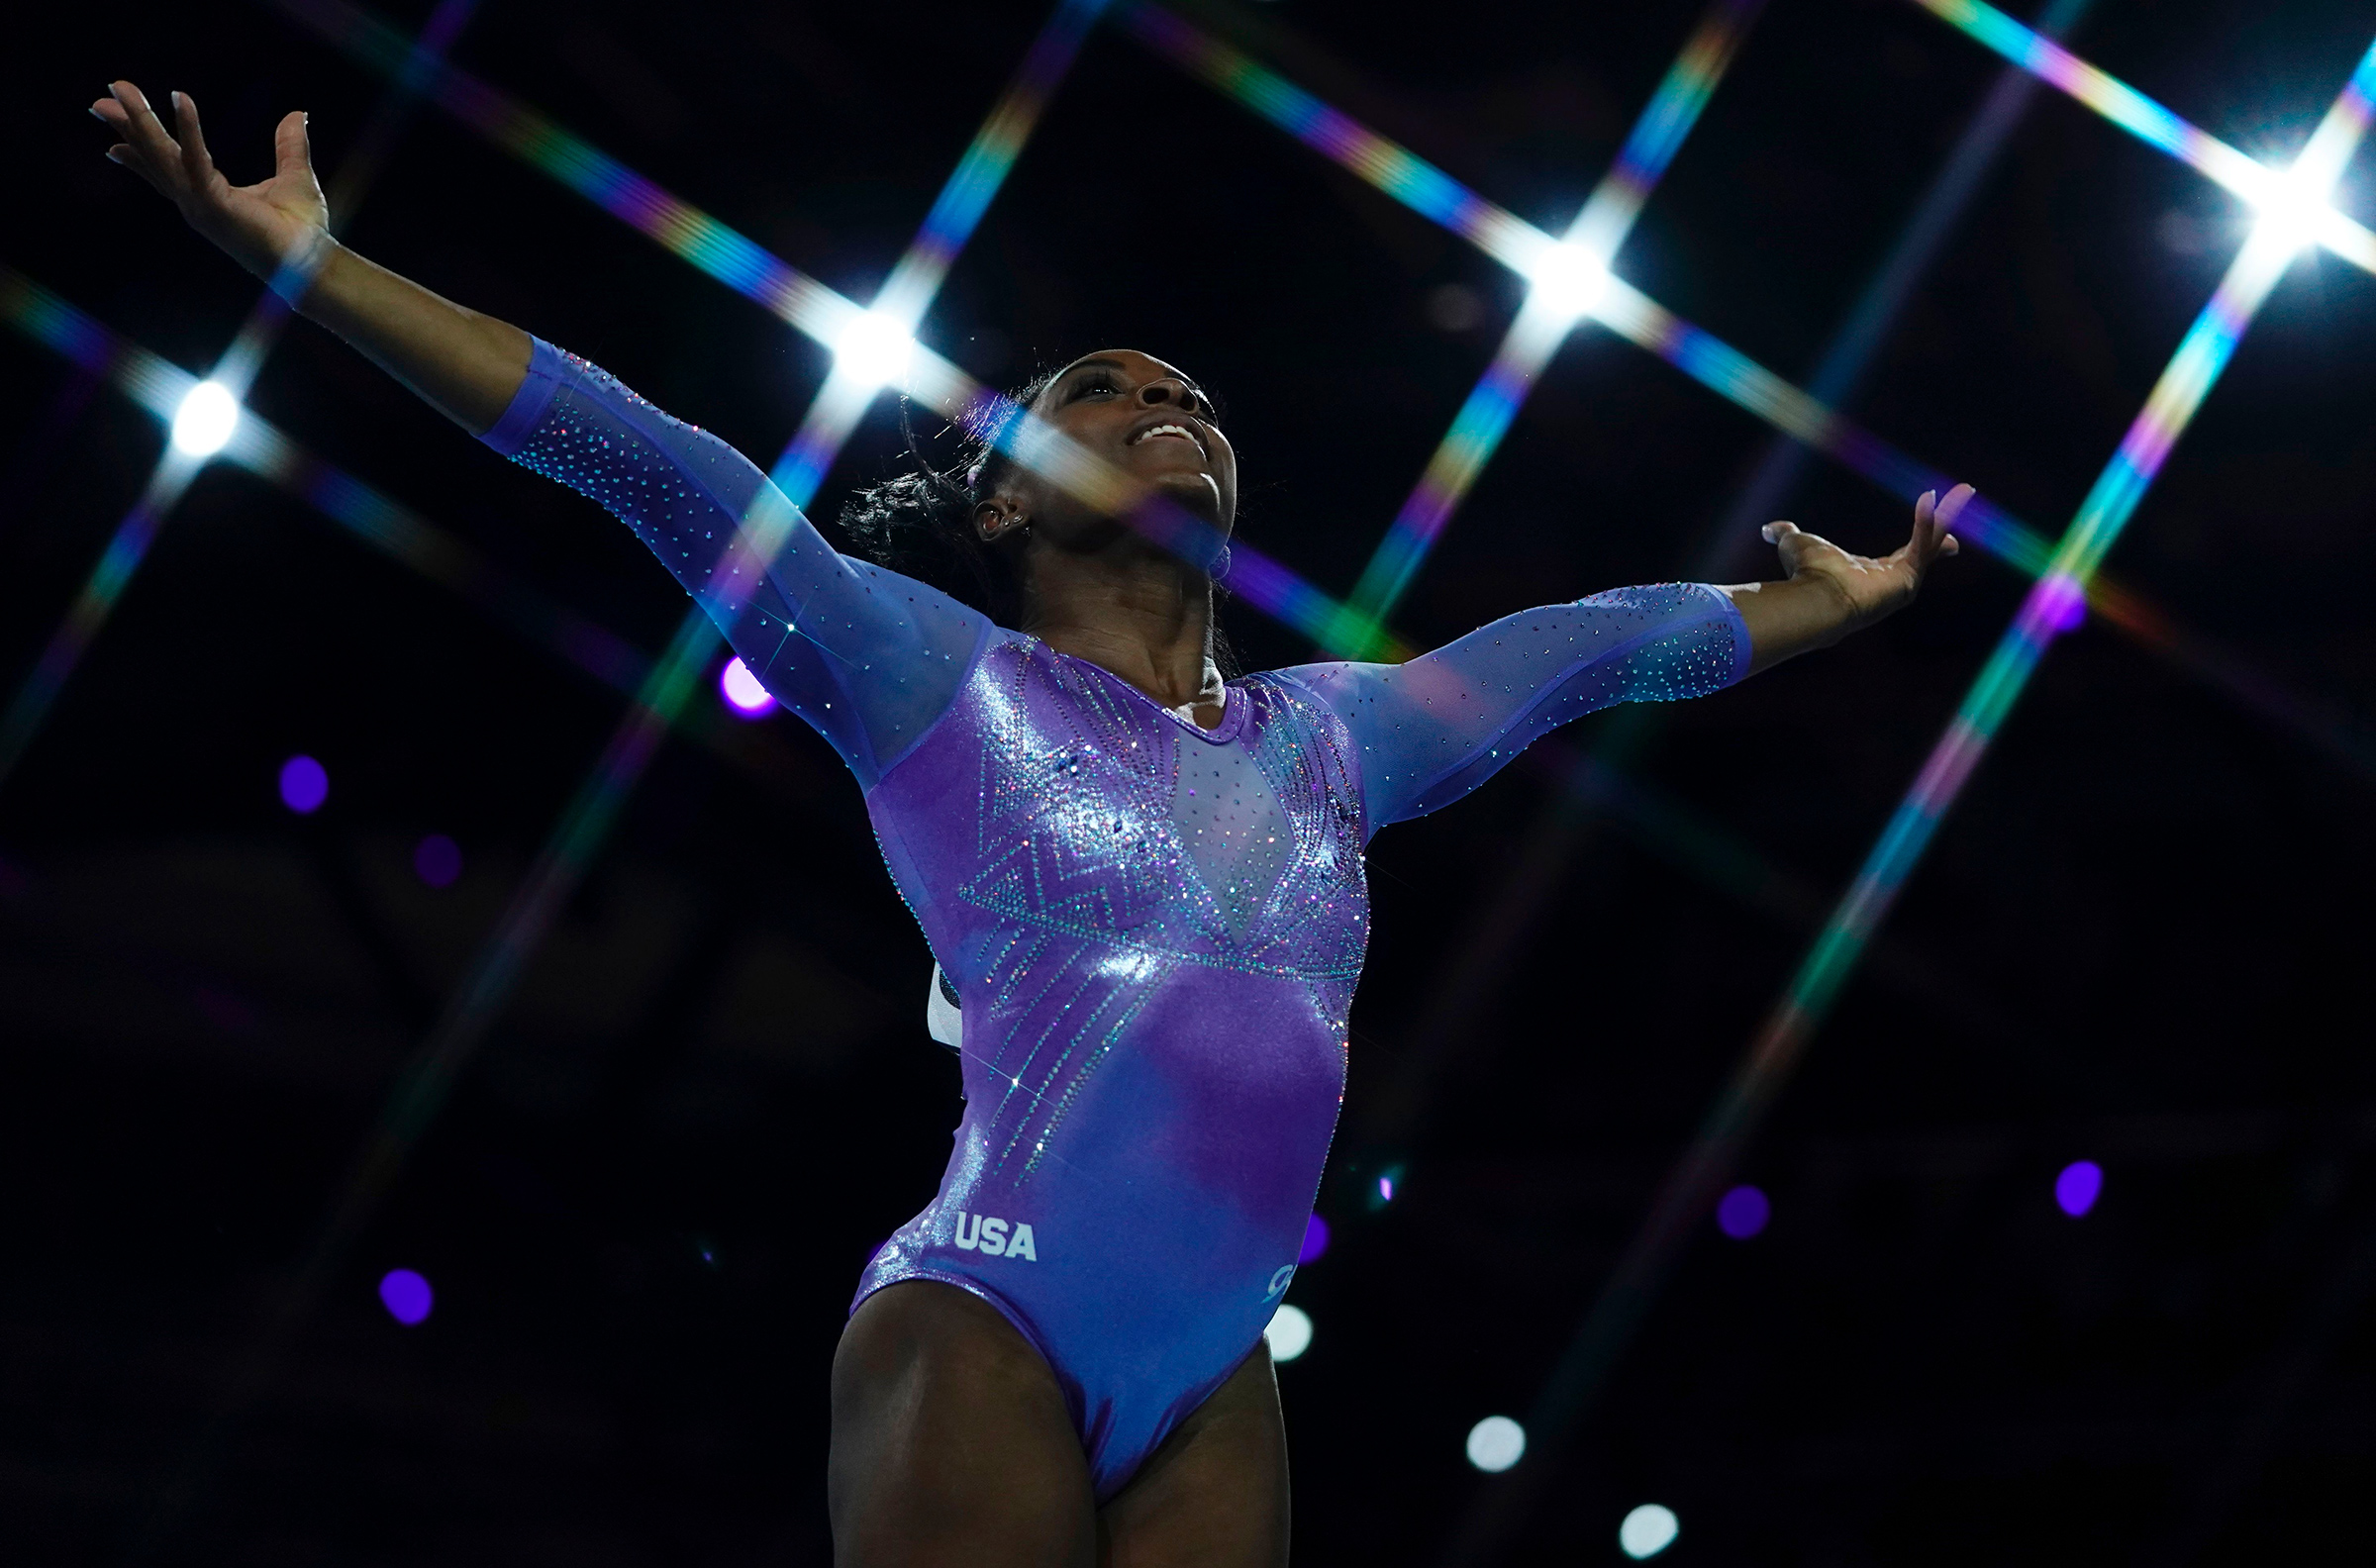 USA's Simone Biles performs during the apparatus finals at the FIG Artistic Gymnastics World Championships in Stuttgart, Germany, on Oct. 13, 2019.